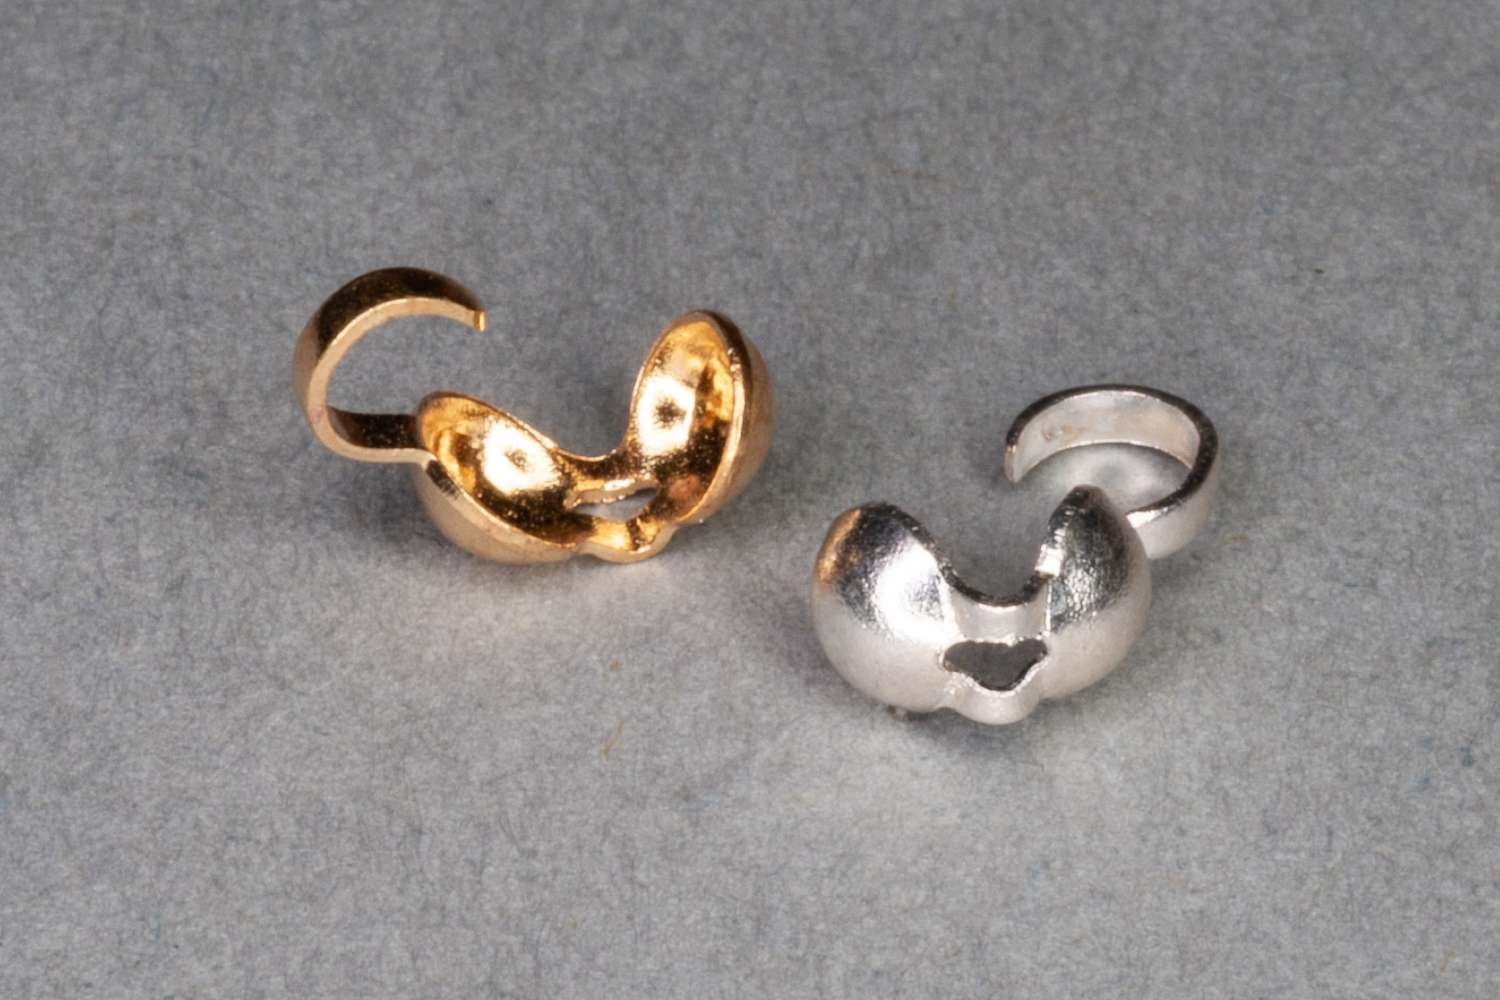 Plated Calotte, 8x4mm